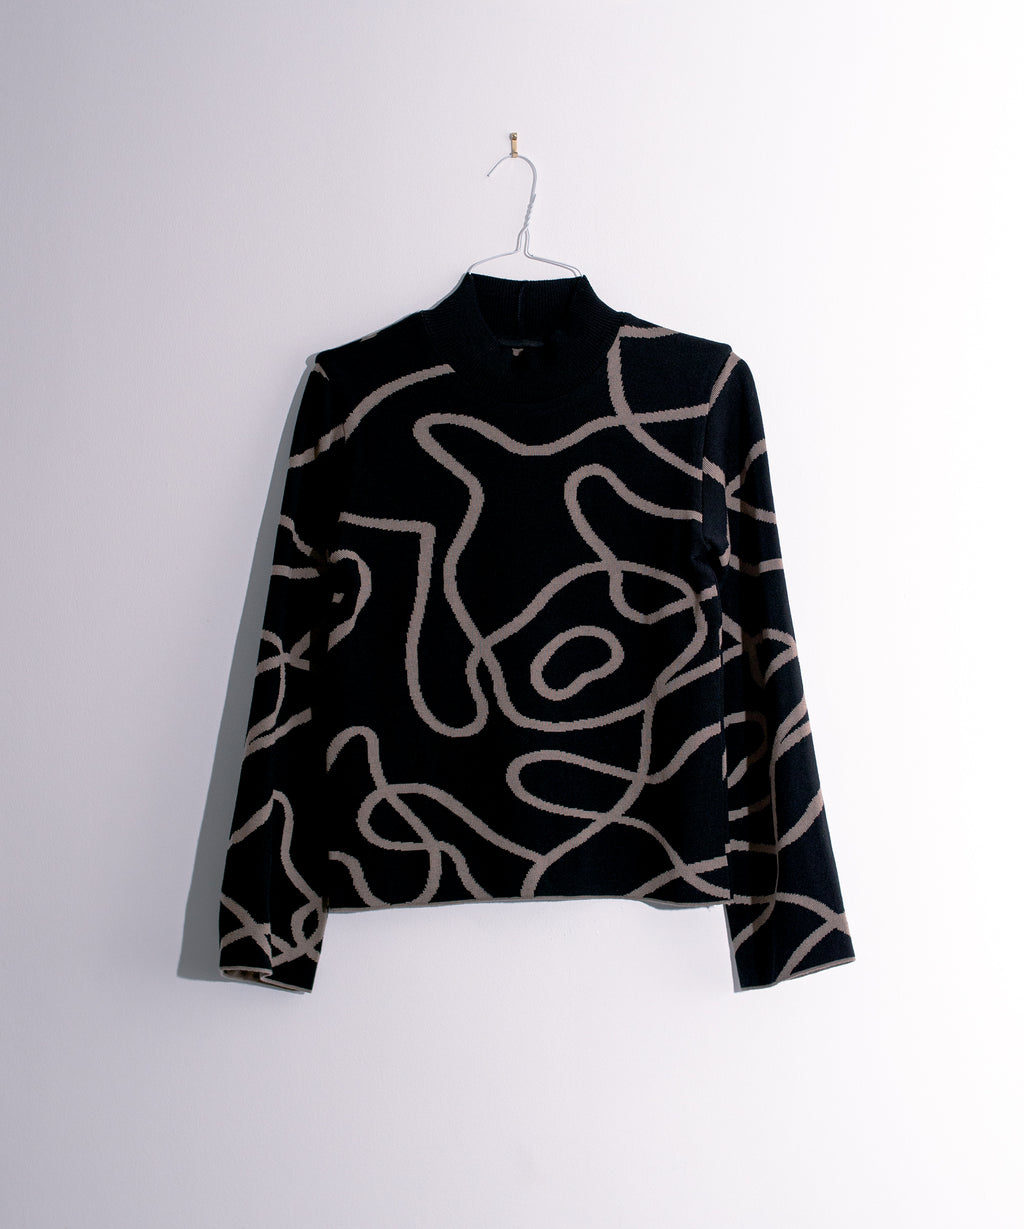 Reversible Jacquard Knit Jumper Black/Brown